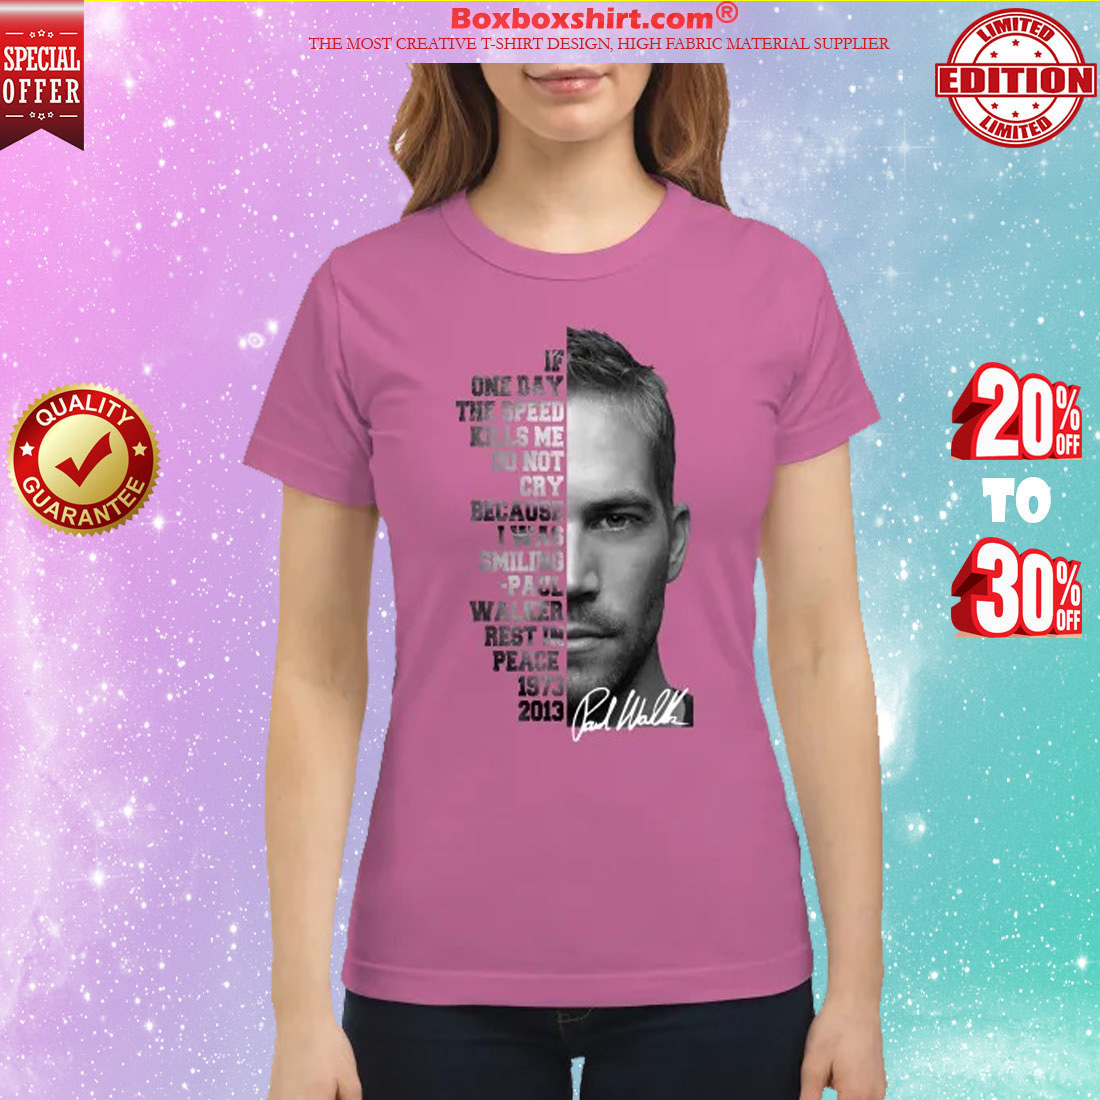 One day the speed kills me do not cry because I was smiling Paul Walker rest in peace classic shirt